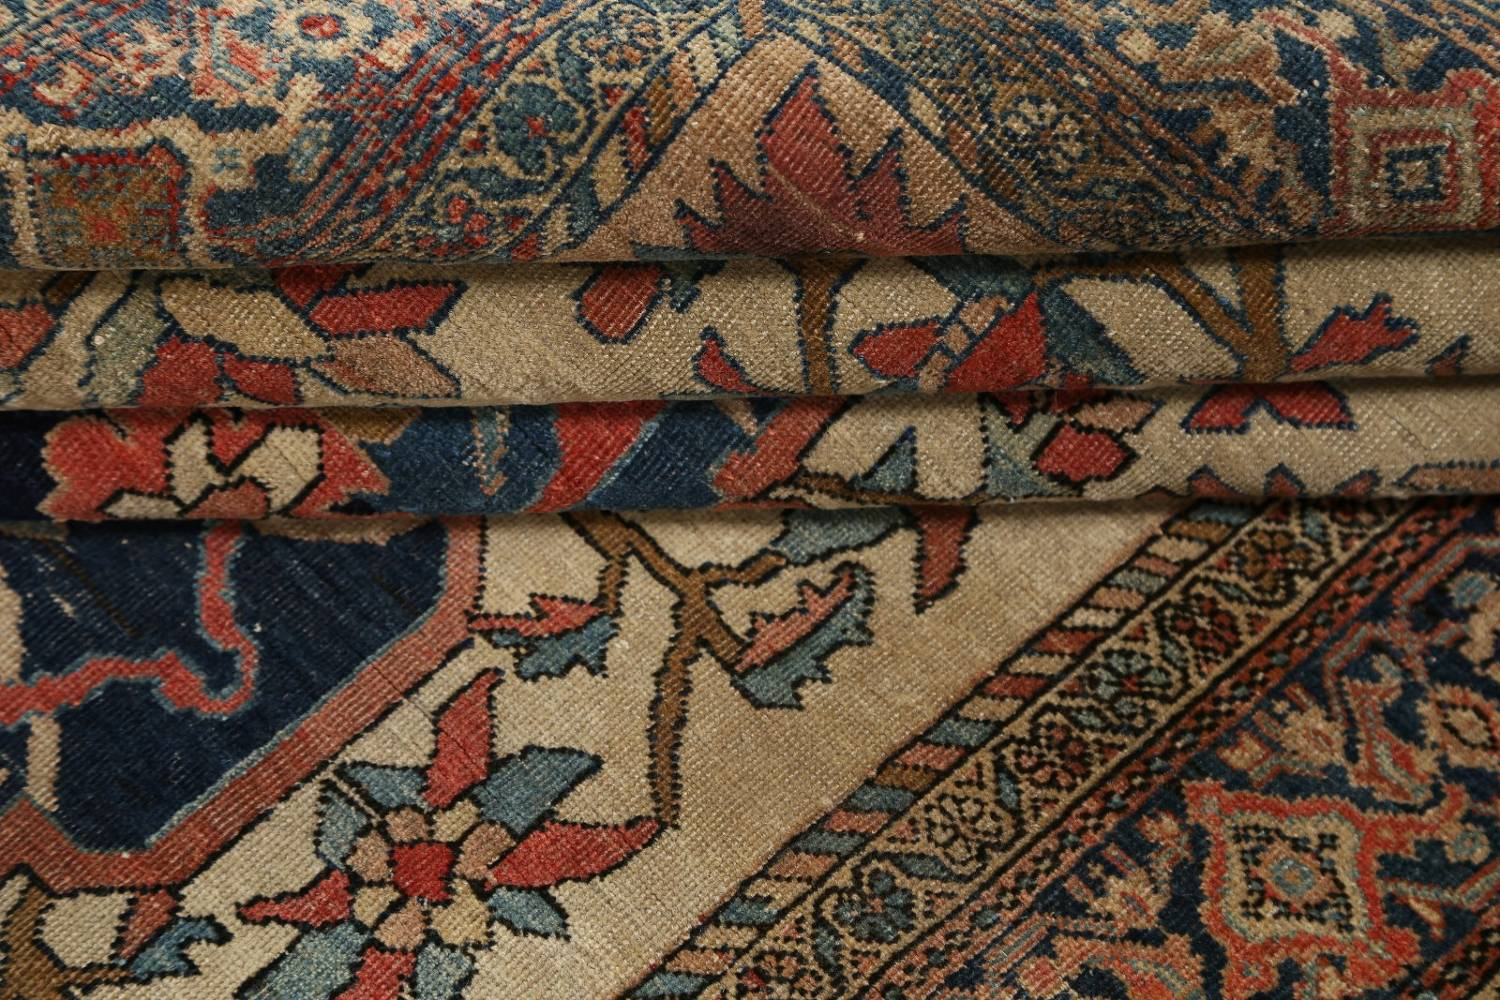 Pre-1900 Antique Floral Sarouk Farahan Persian Hand-Knotted 4'x7' Wool Area Rug image 18